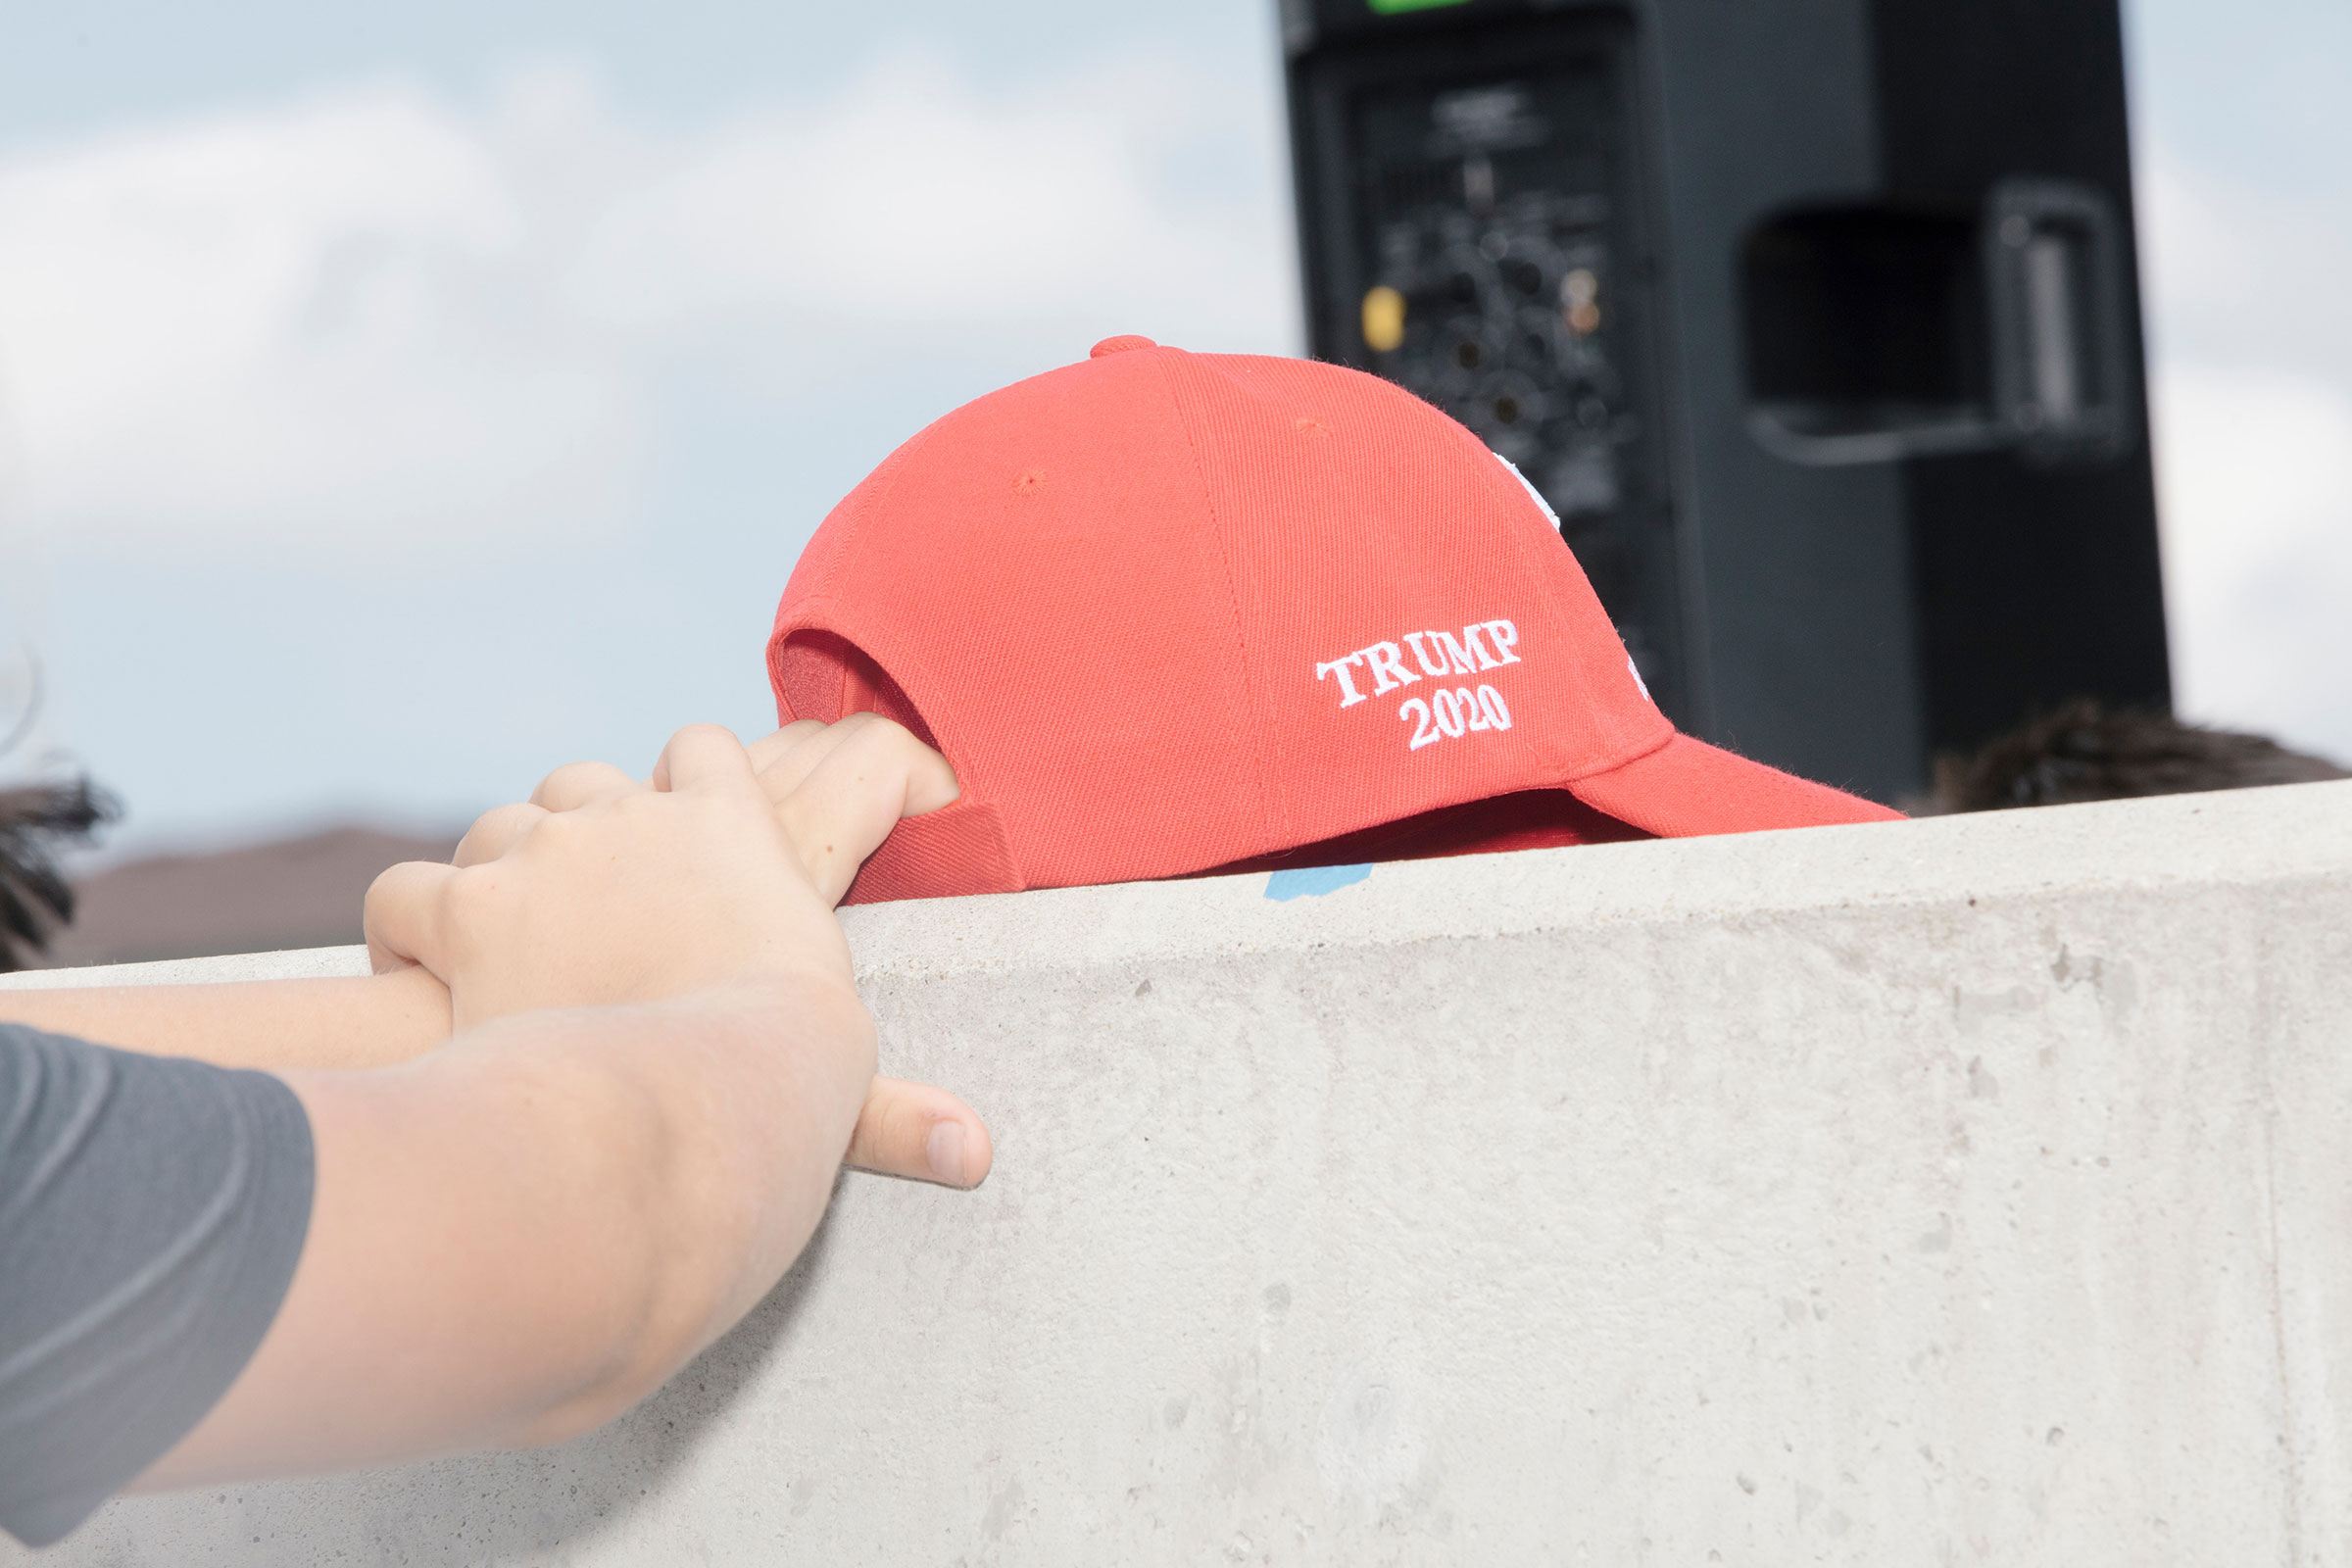 A Trump 2020 hat seen at the Iowa State Fair on Aug. 10, 2019.